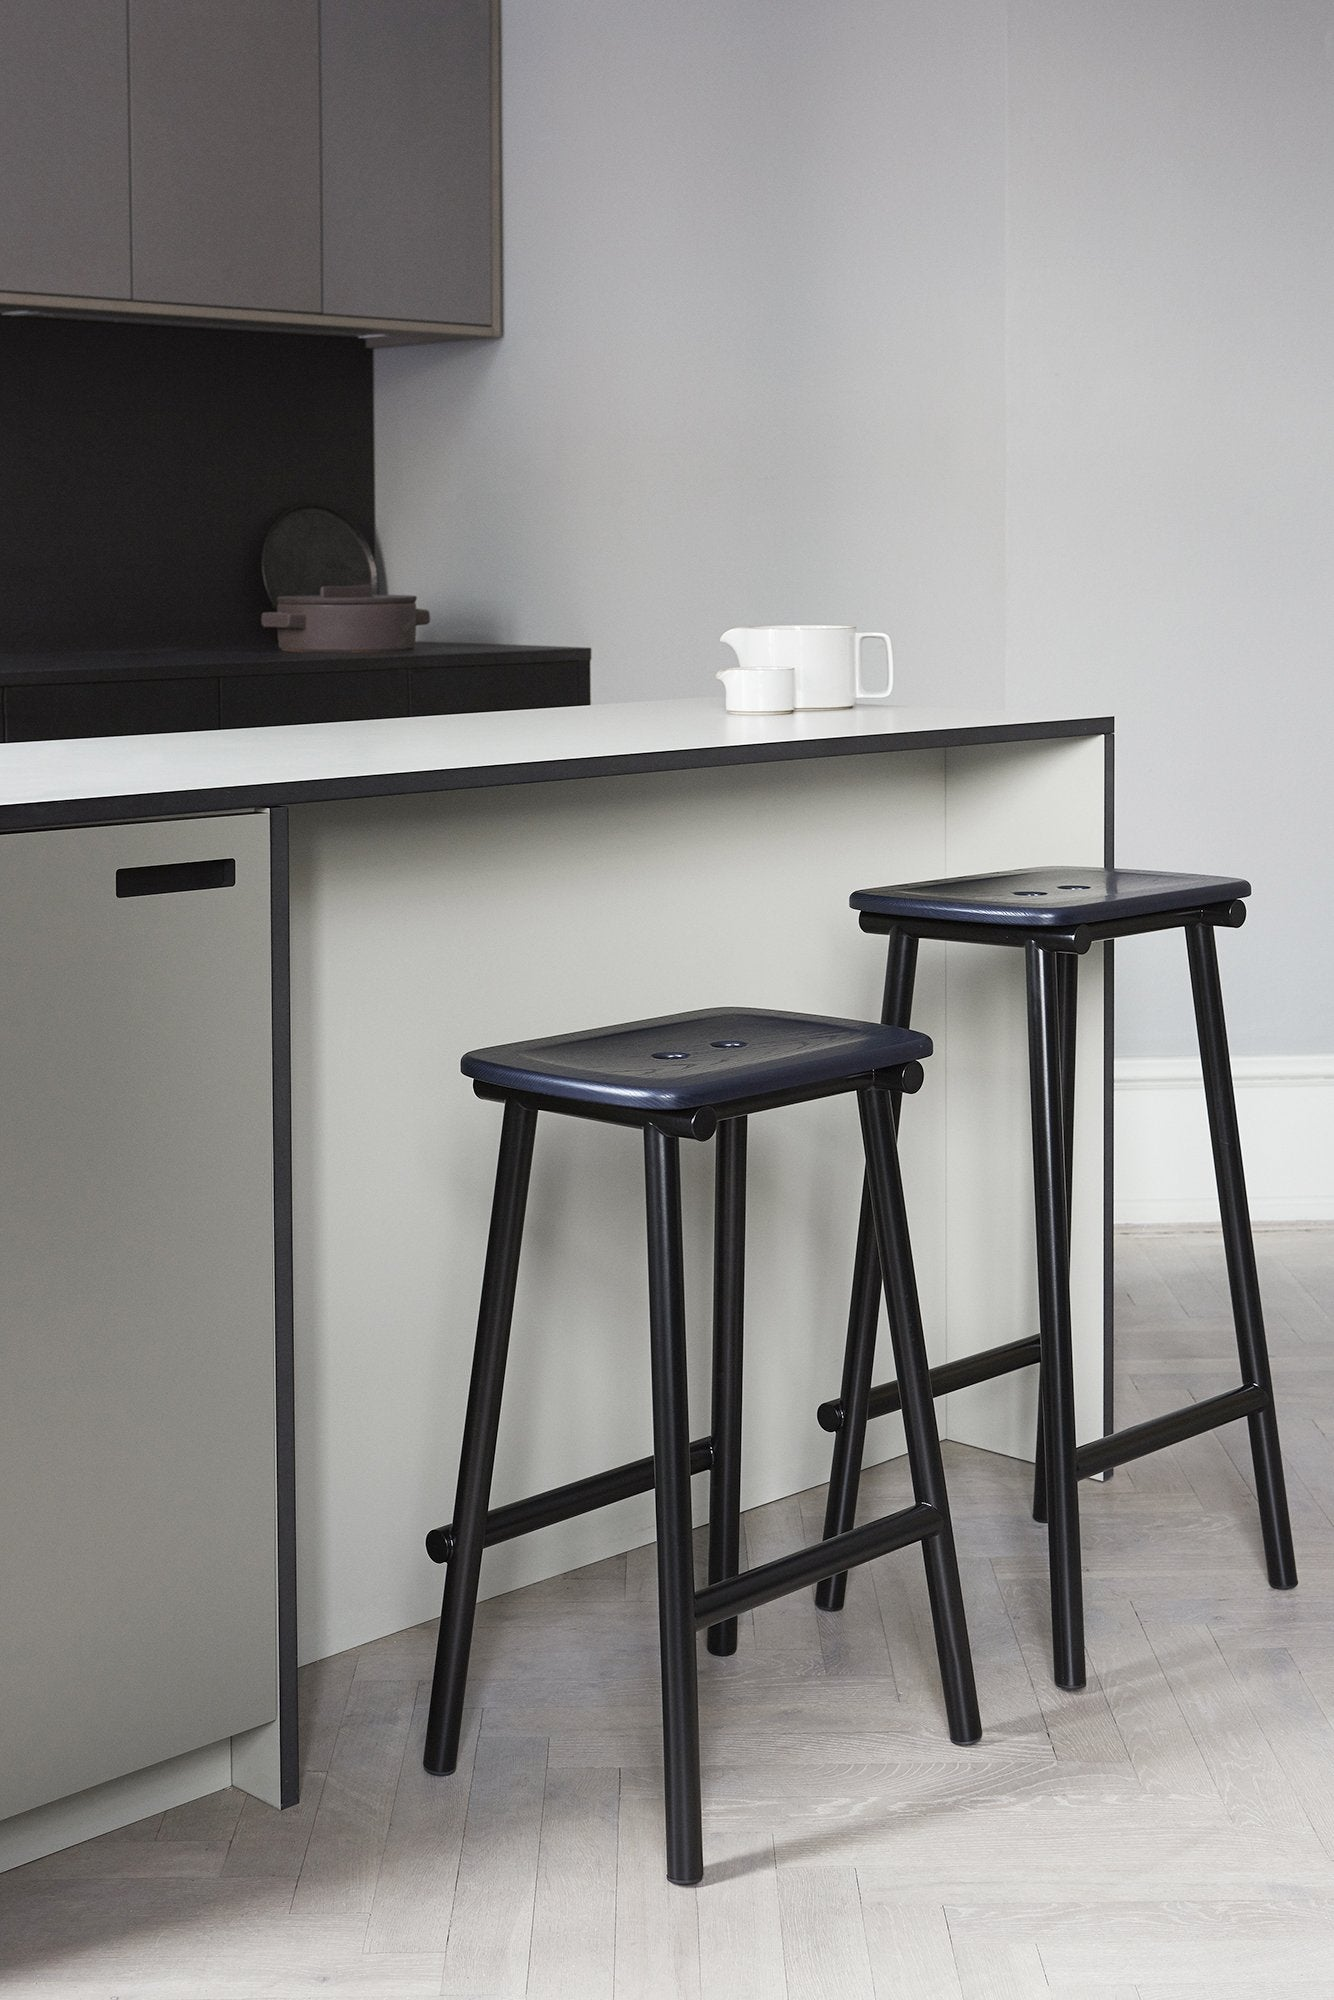 Tubby Counter Stool-Faye Toogood-Please Wait to be Seated-Natural Ash- - Average Toronto Canada Design